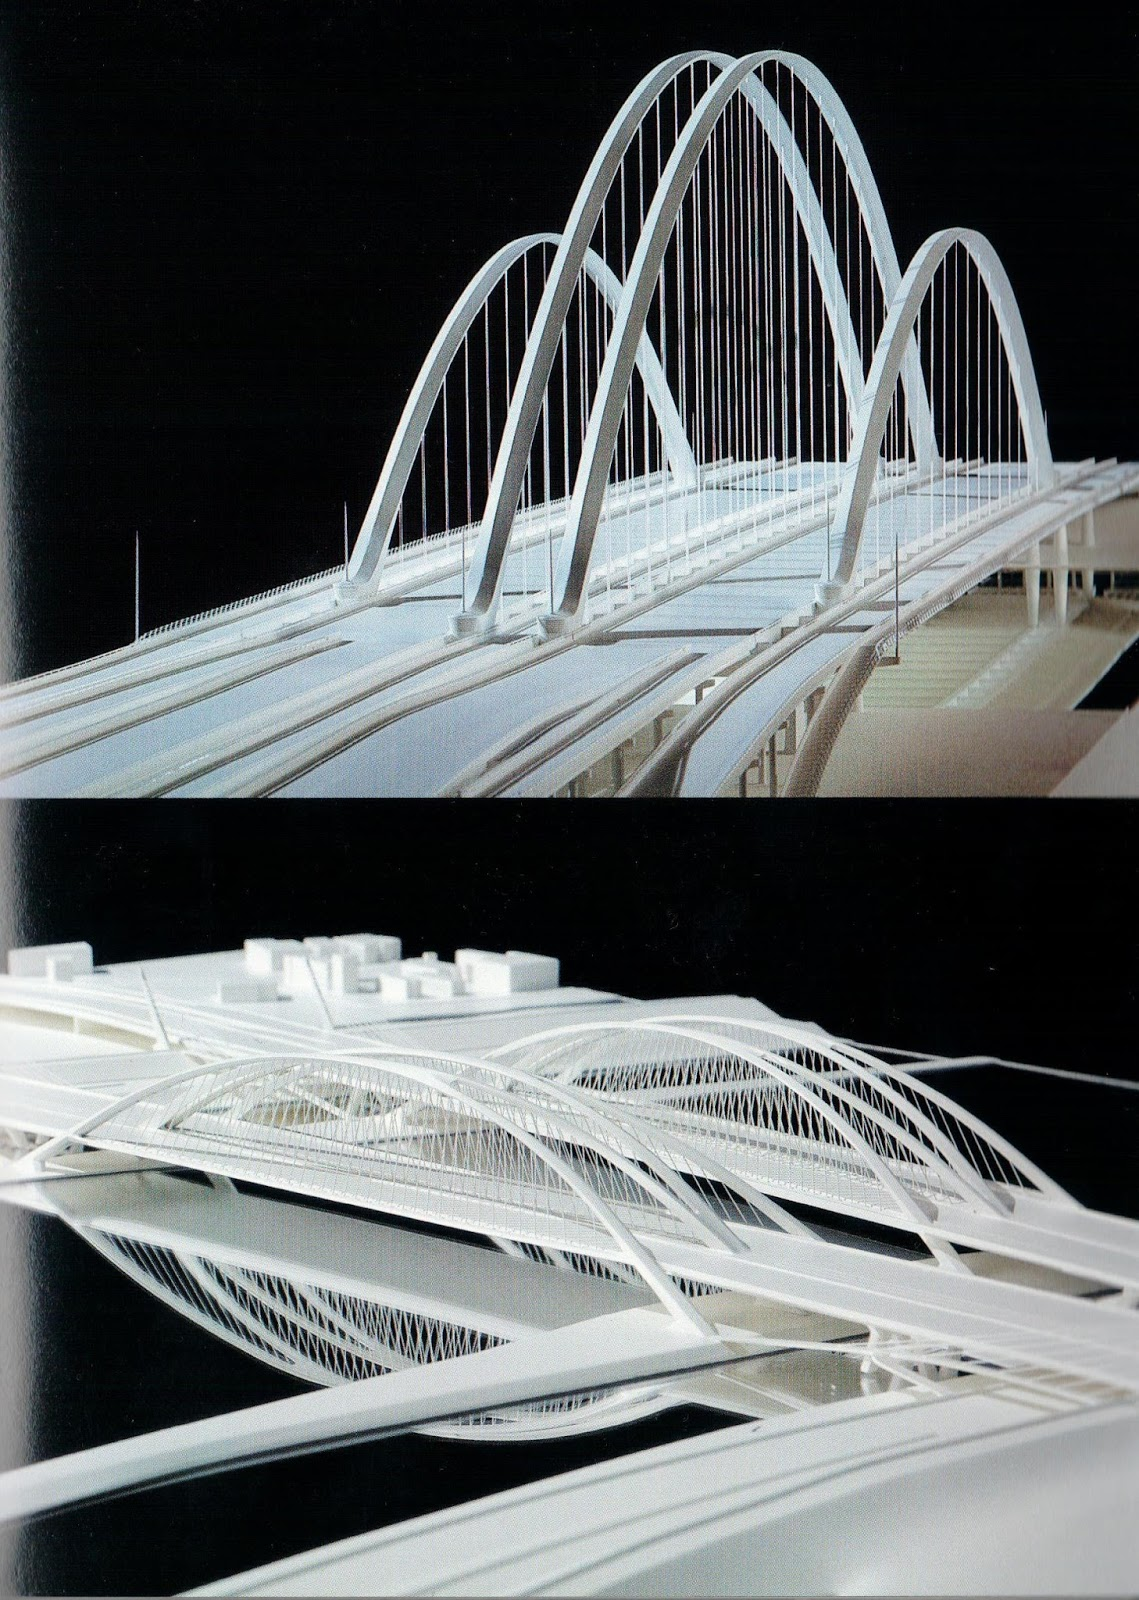 Bridge design books